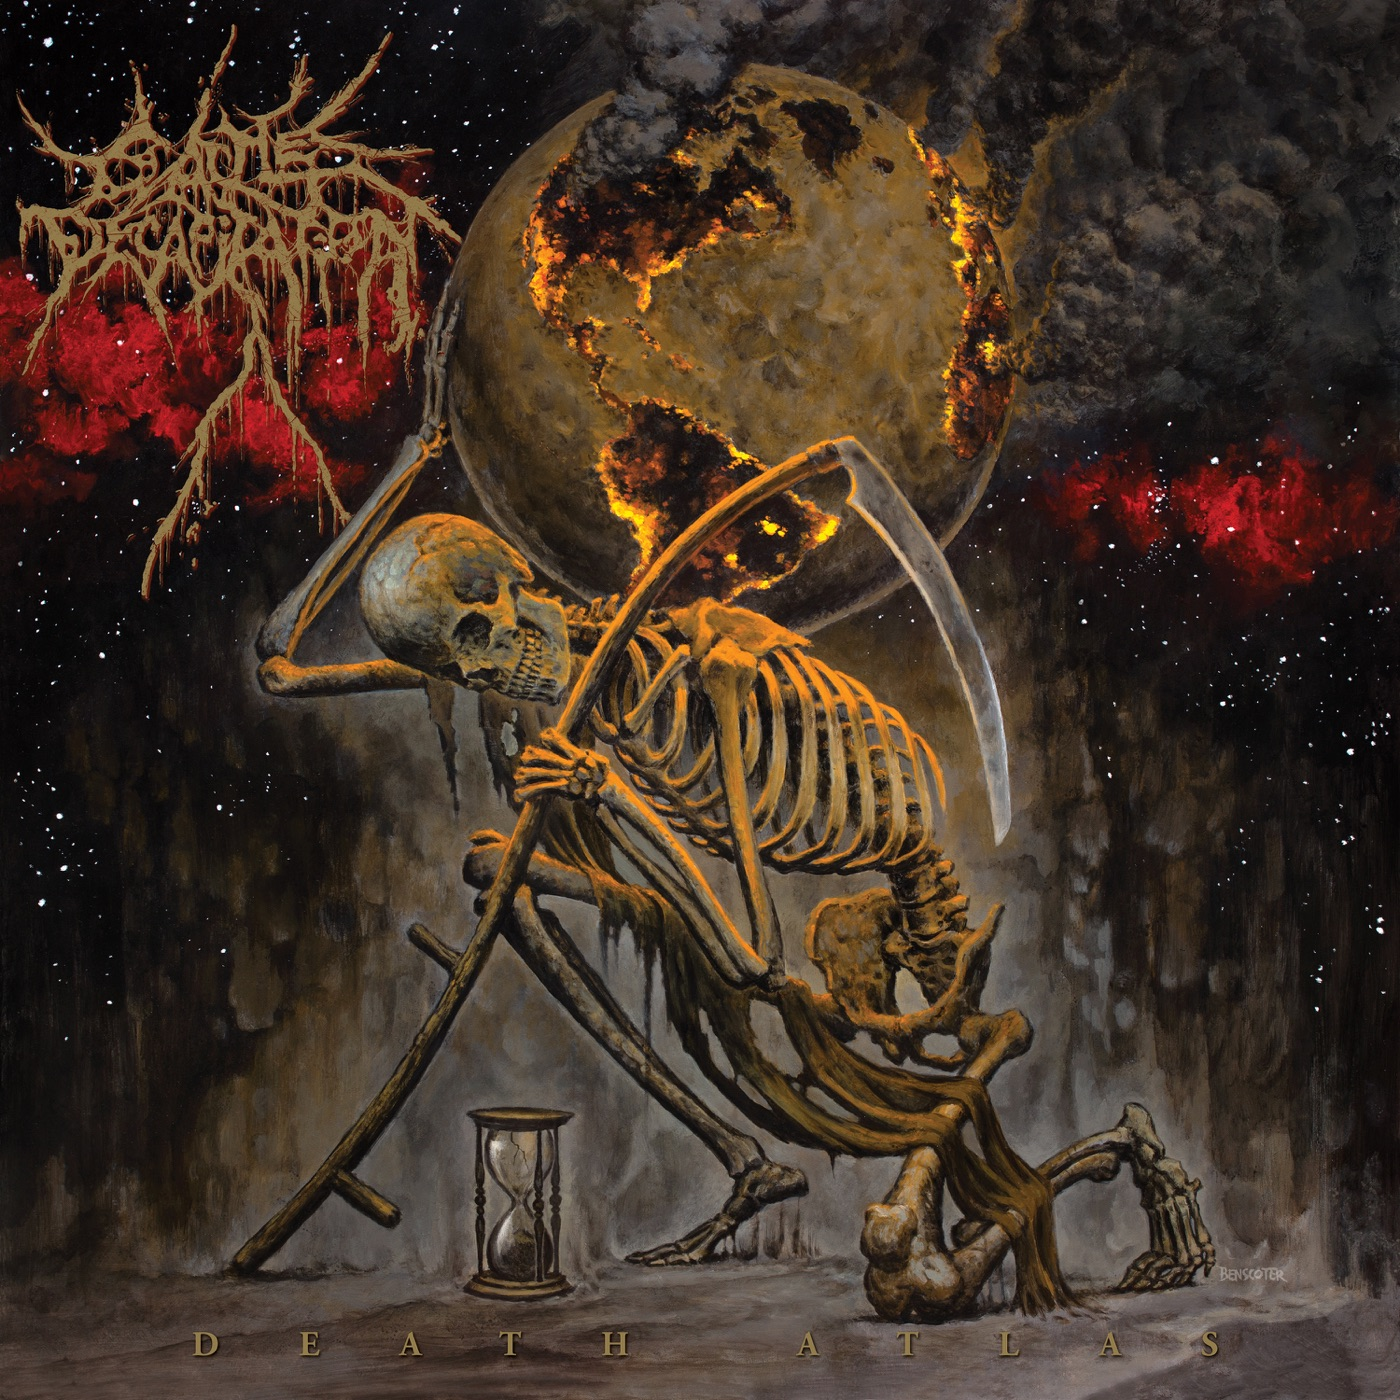 Cattle Decapitation – Death Atlas